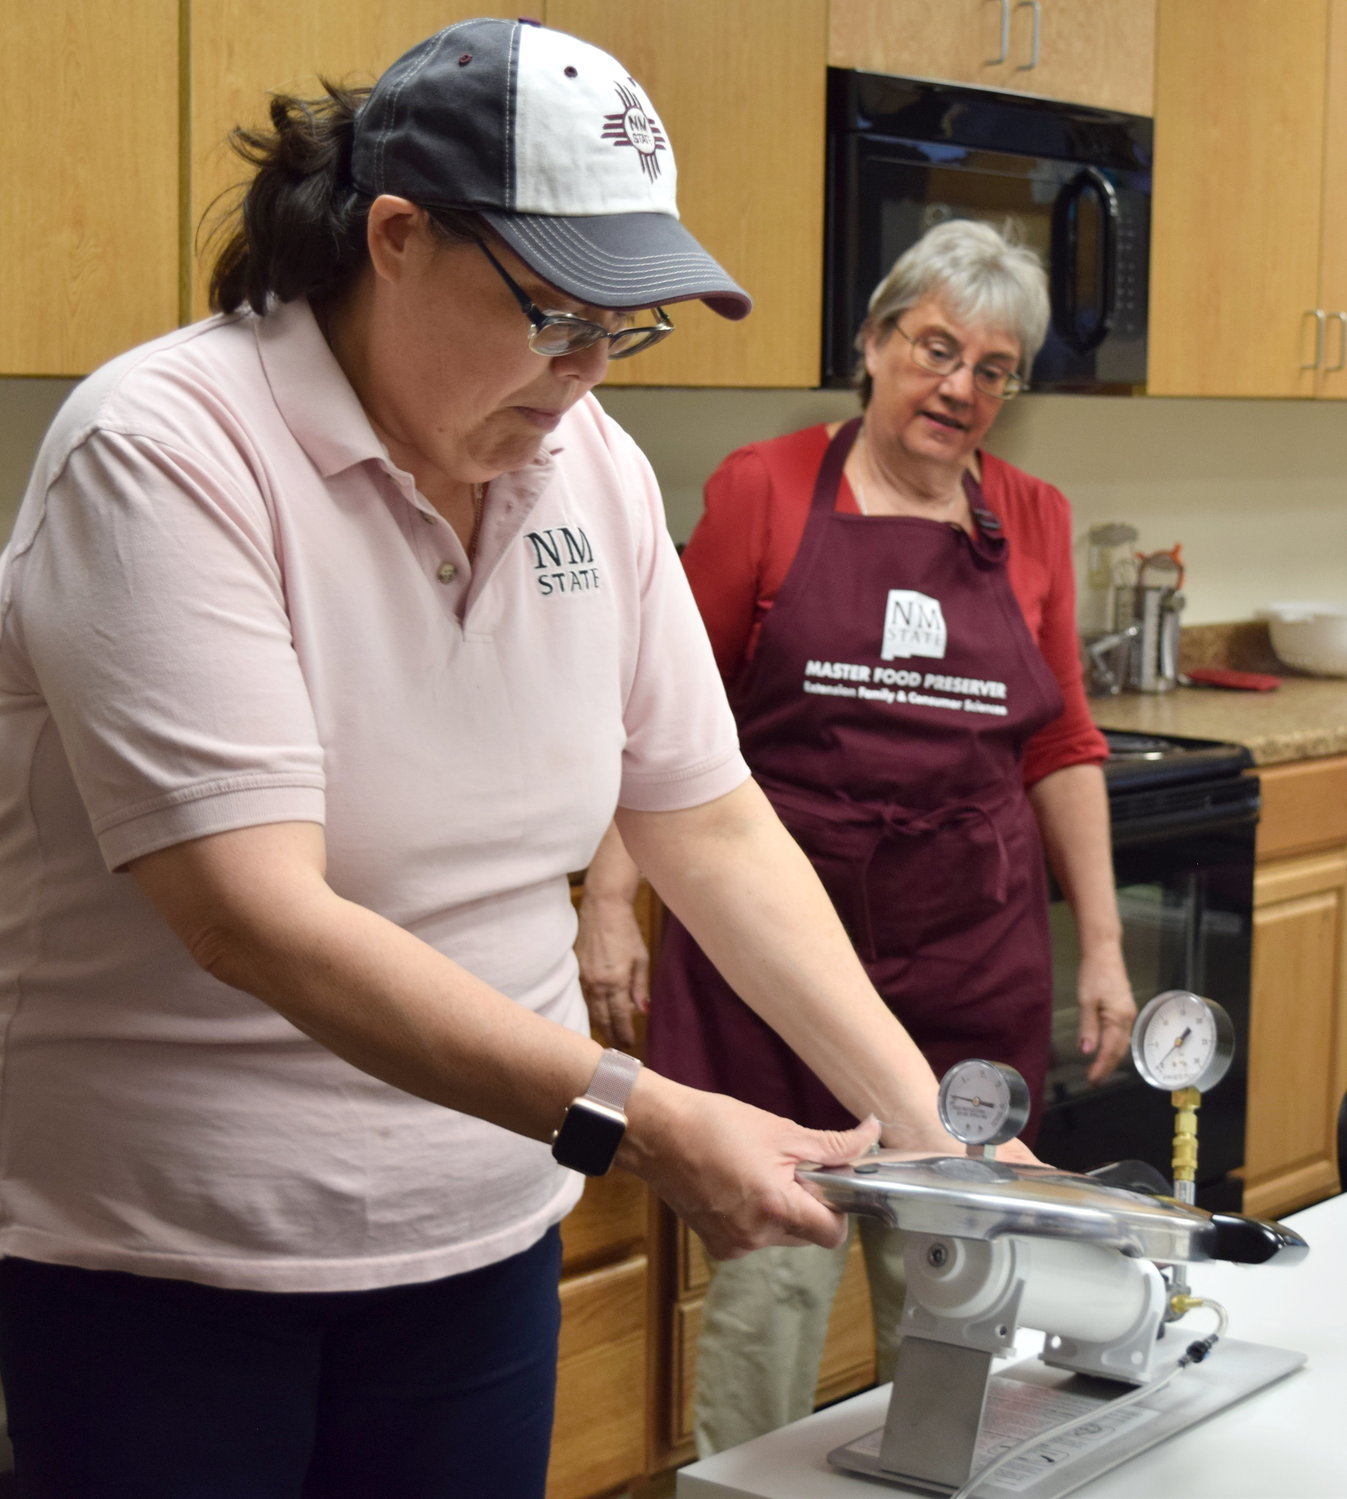 Nancy Flores, New Mexico State University Extension food technology specialist, demonstrates how to test